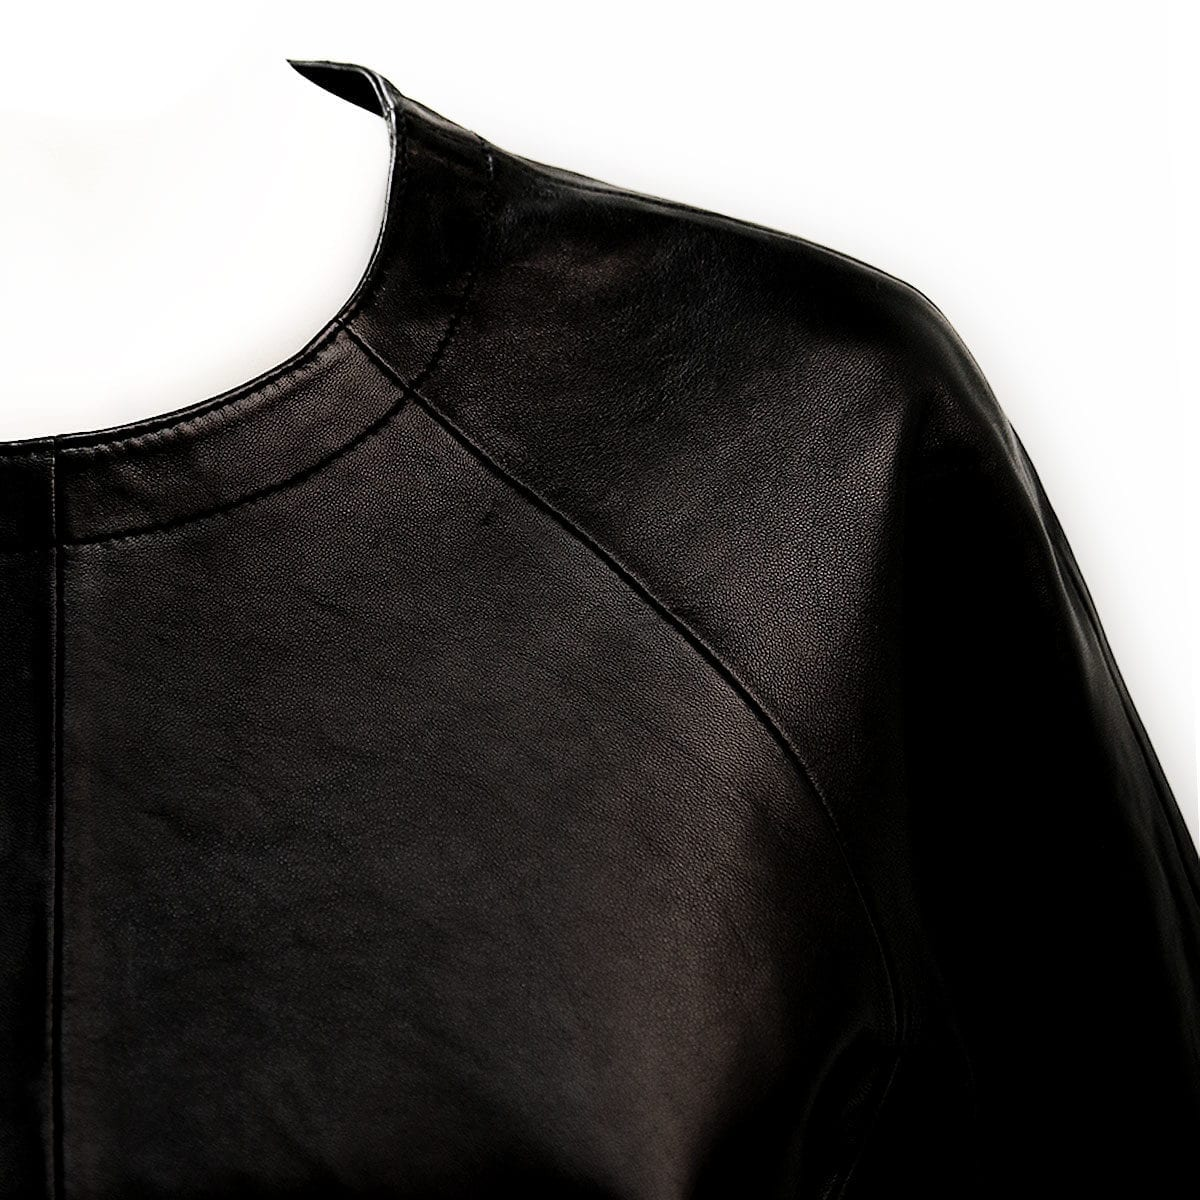 LUMI Leather Garments T-Shirt details